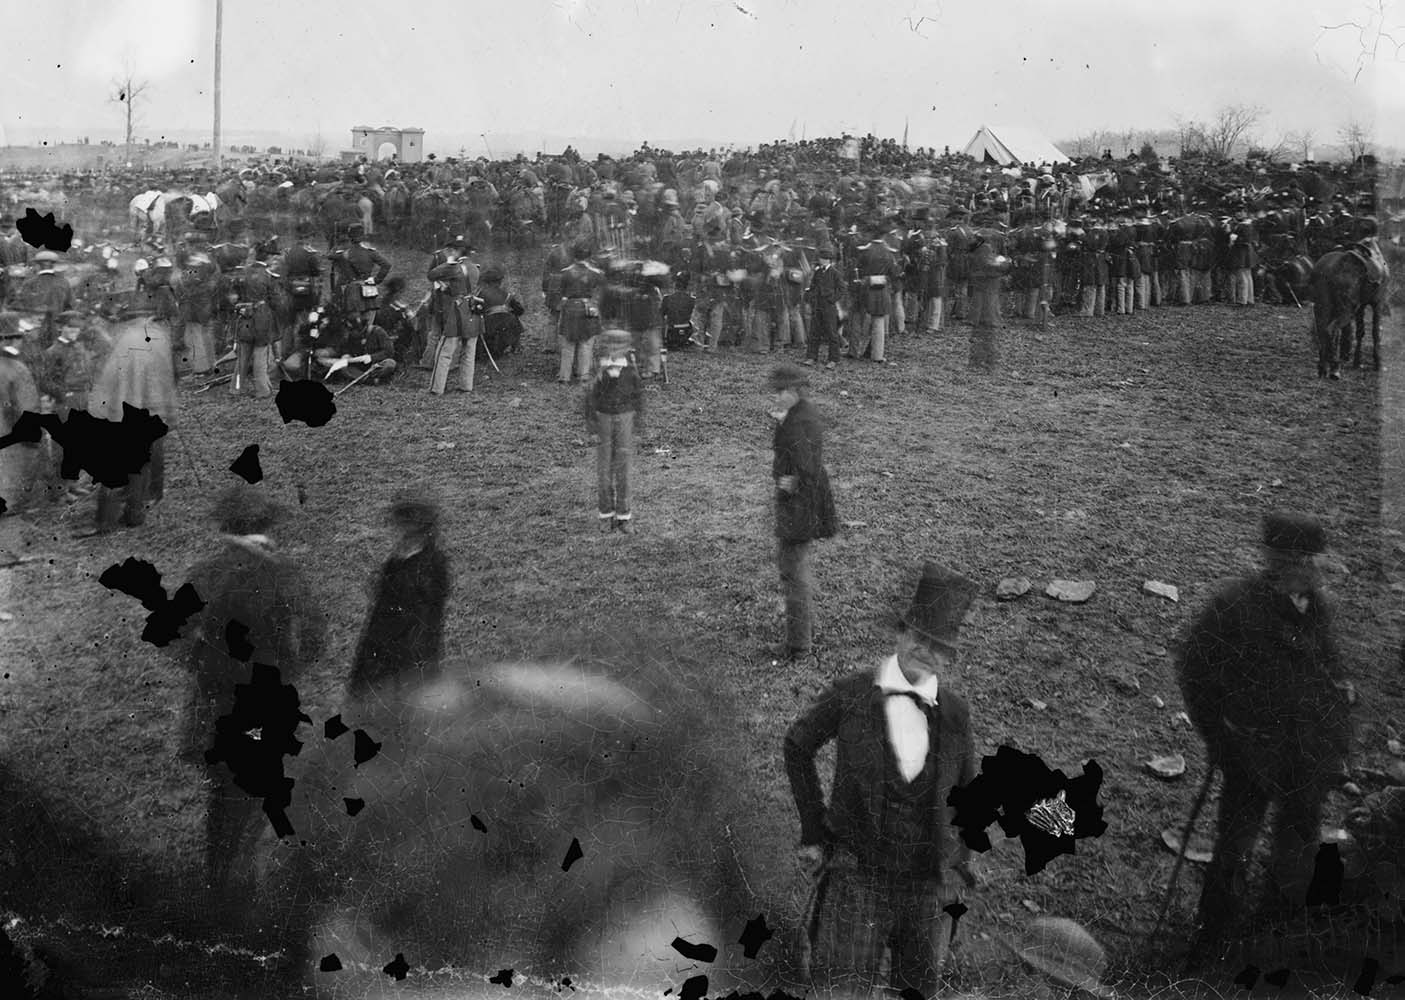 Nov. 19, 1863. This photo made available by the Library of Congress on Nov. 19, 2013 shows the crowd assembled for President Abraham Lincoln's address at the dedication of a portion of the battlefield at Gettysburg, Pa. as a national cemetery.